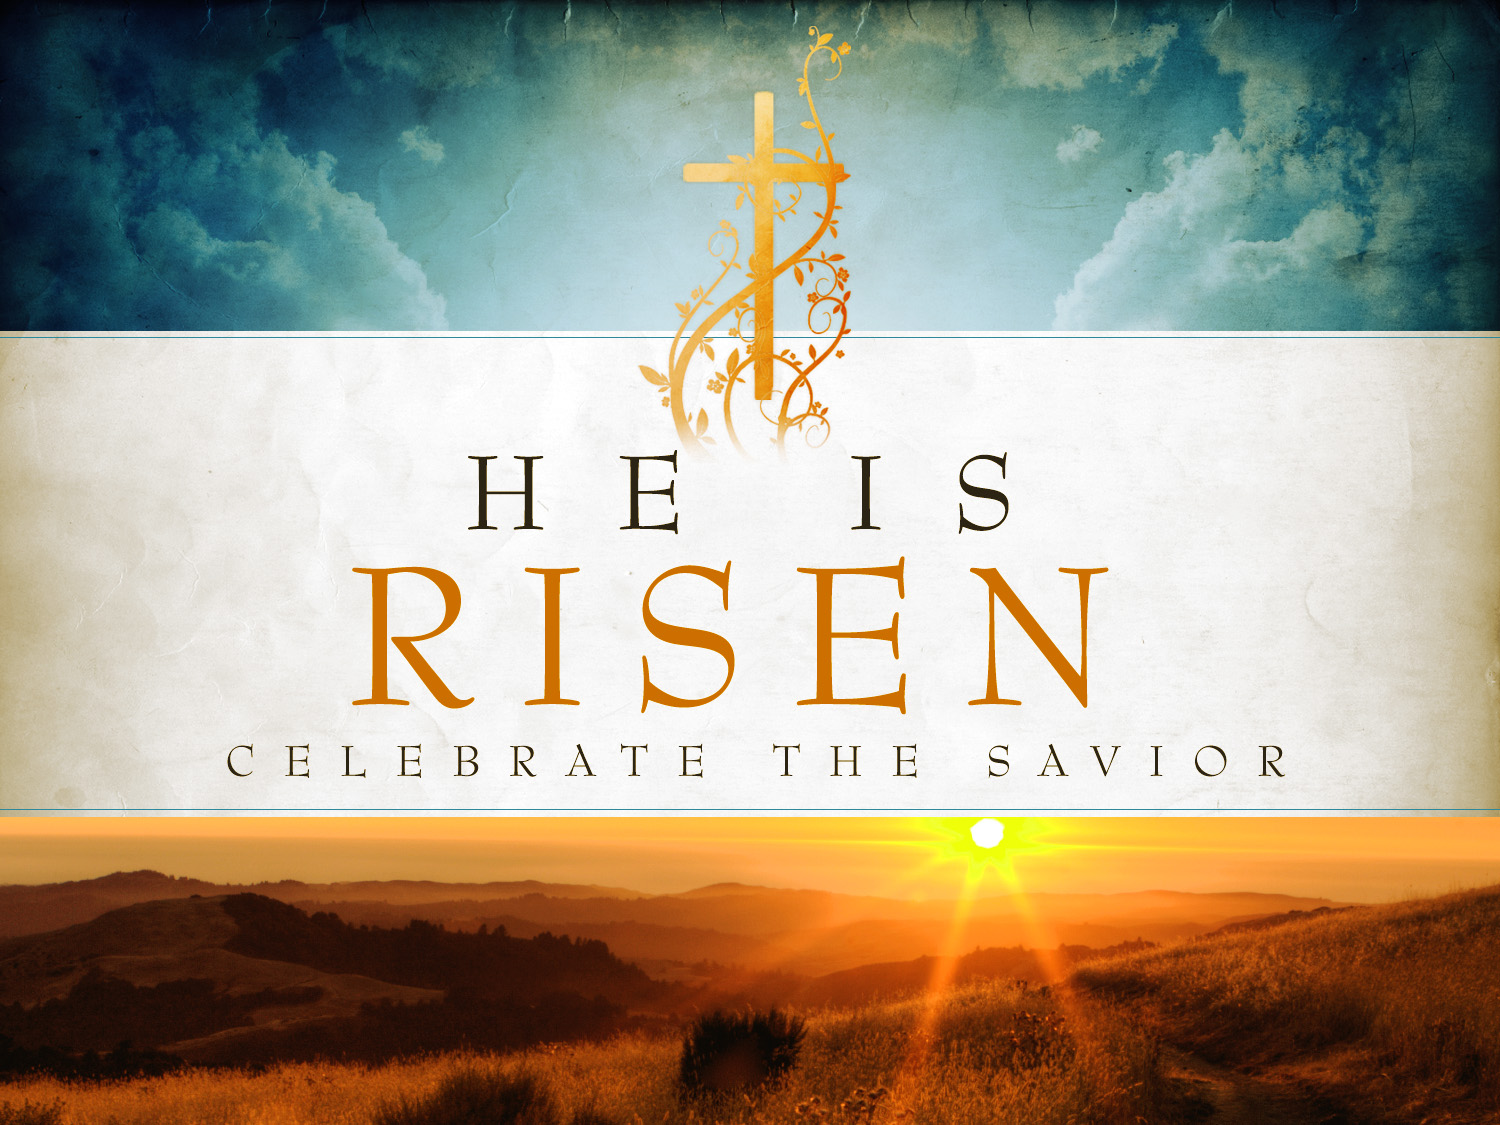 20 Easter Sunday 2015 HD Wallpapers   Educational Entertainment 1500x1125